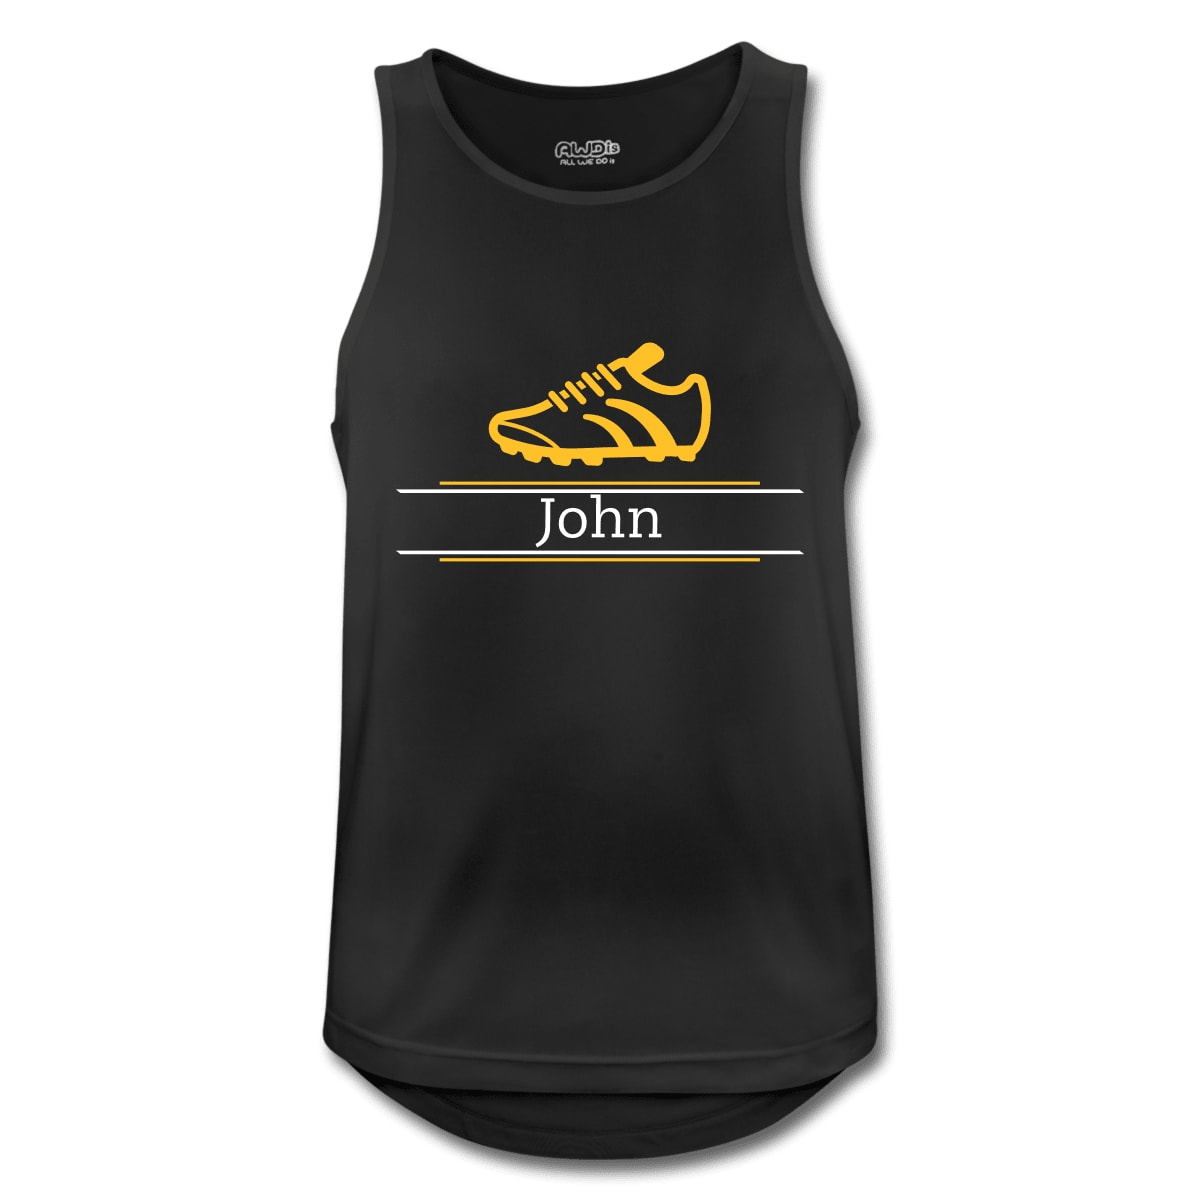 Create your own Running Vests